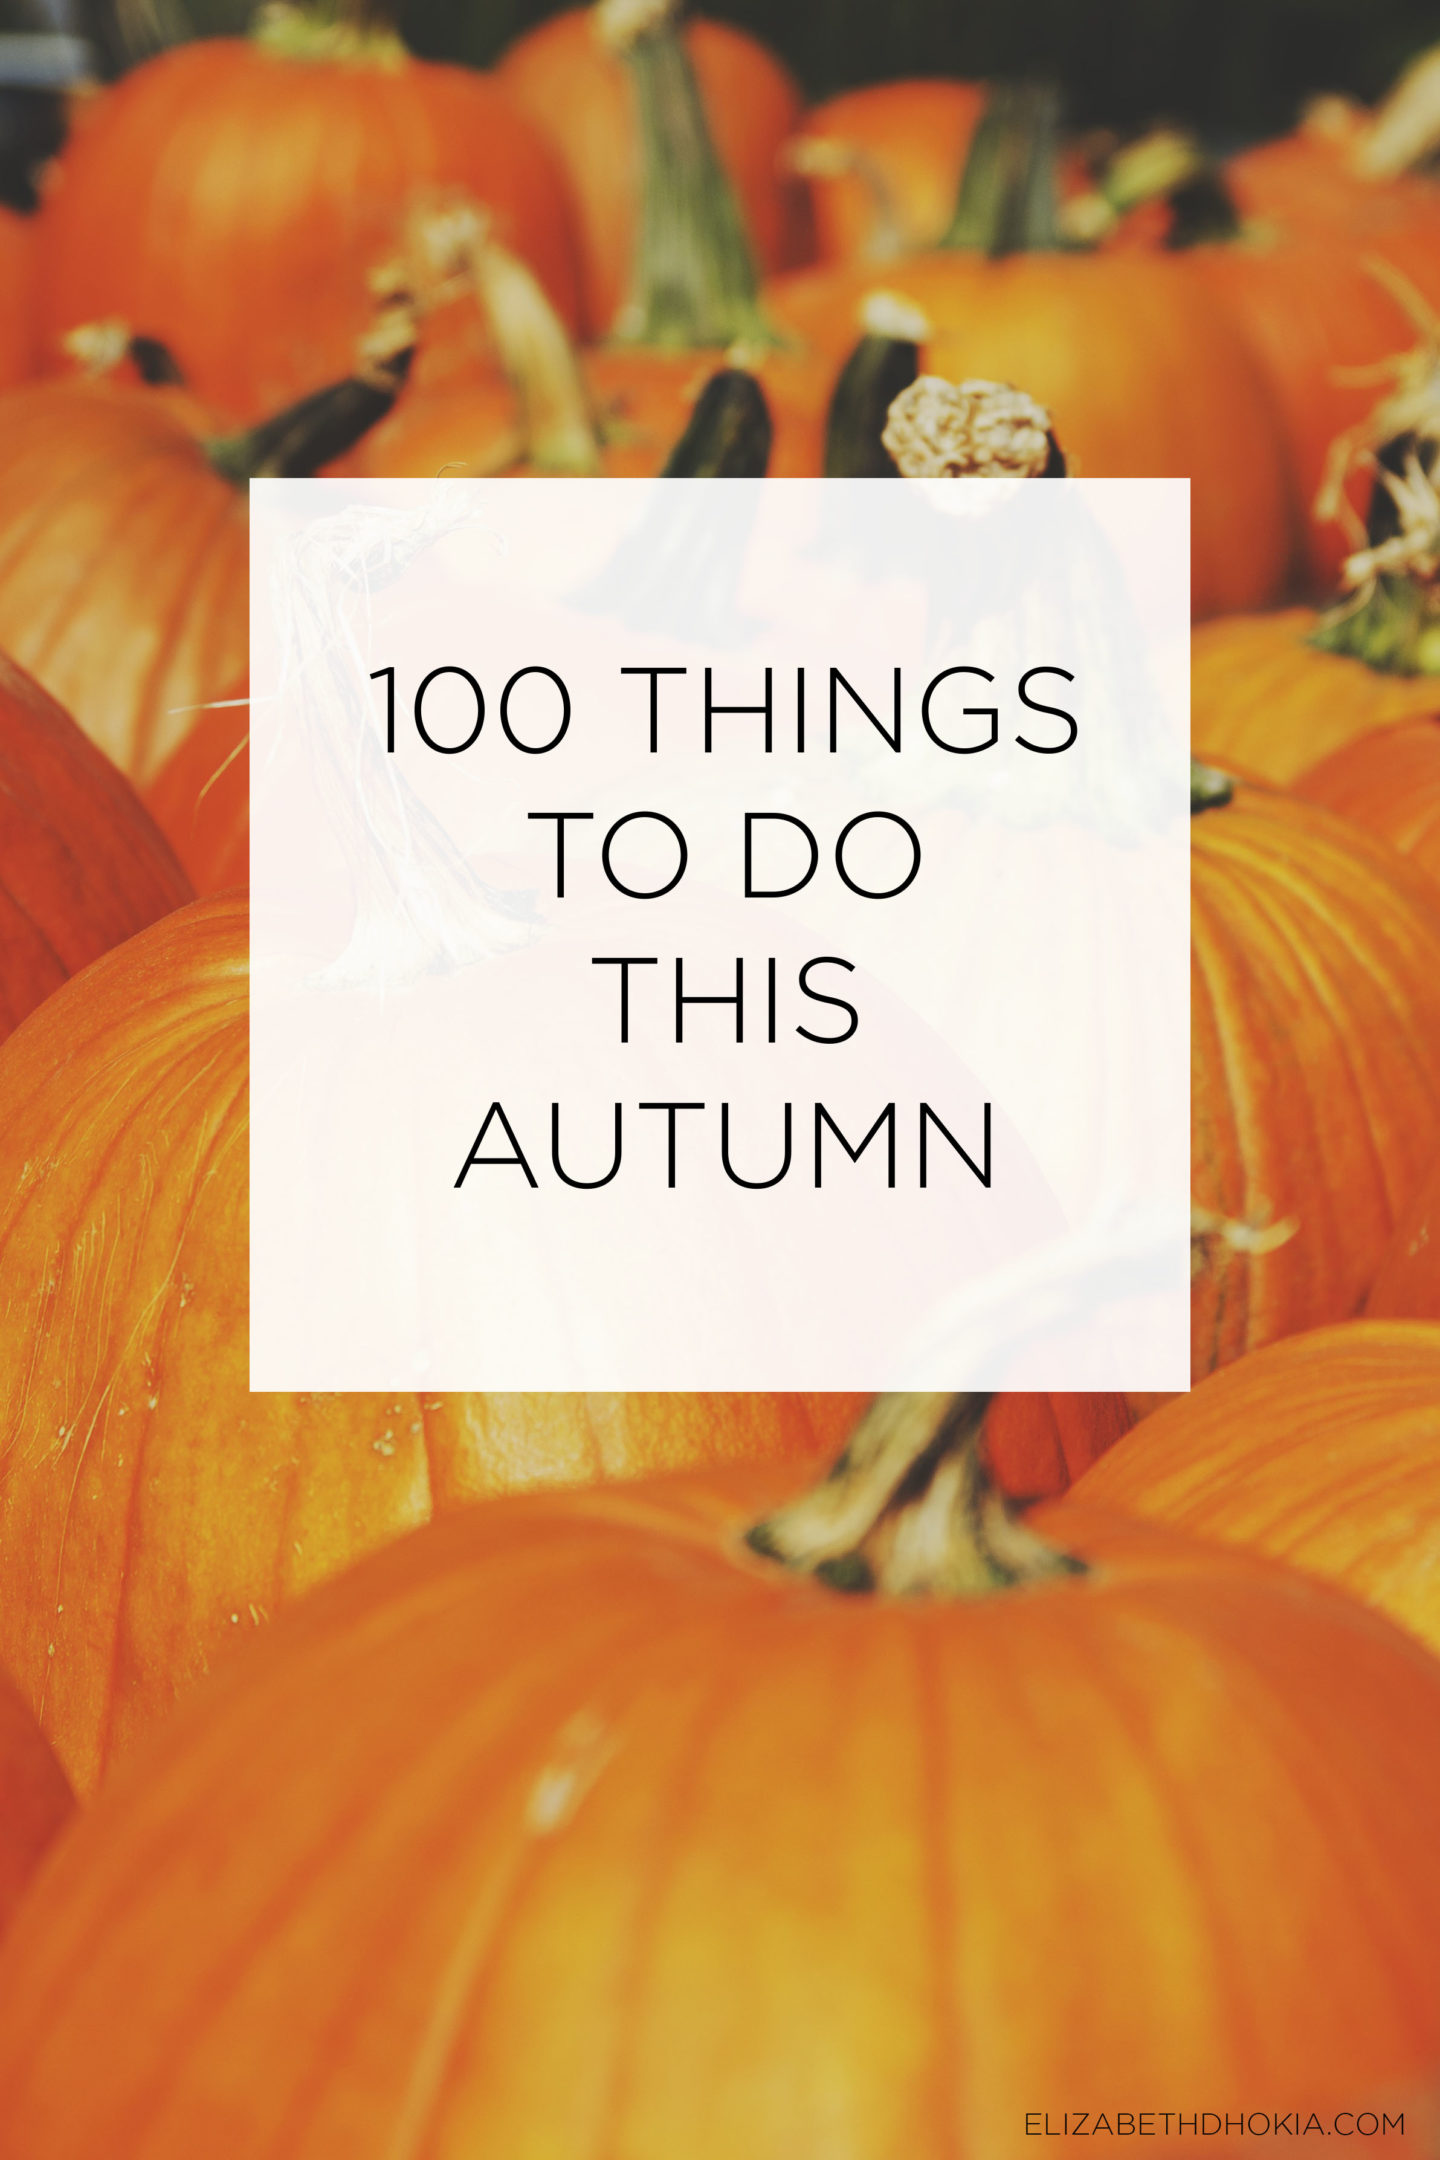 Rows of pumpkins and a caption saying 100 Things To Do This Autumn